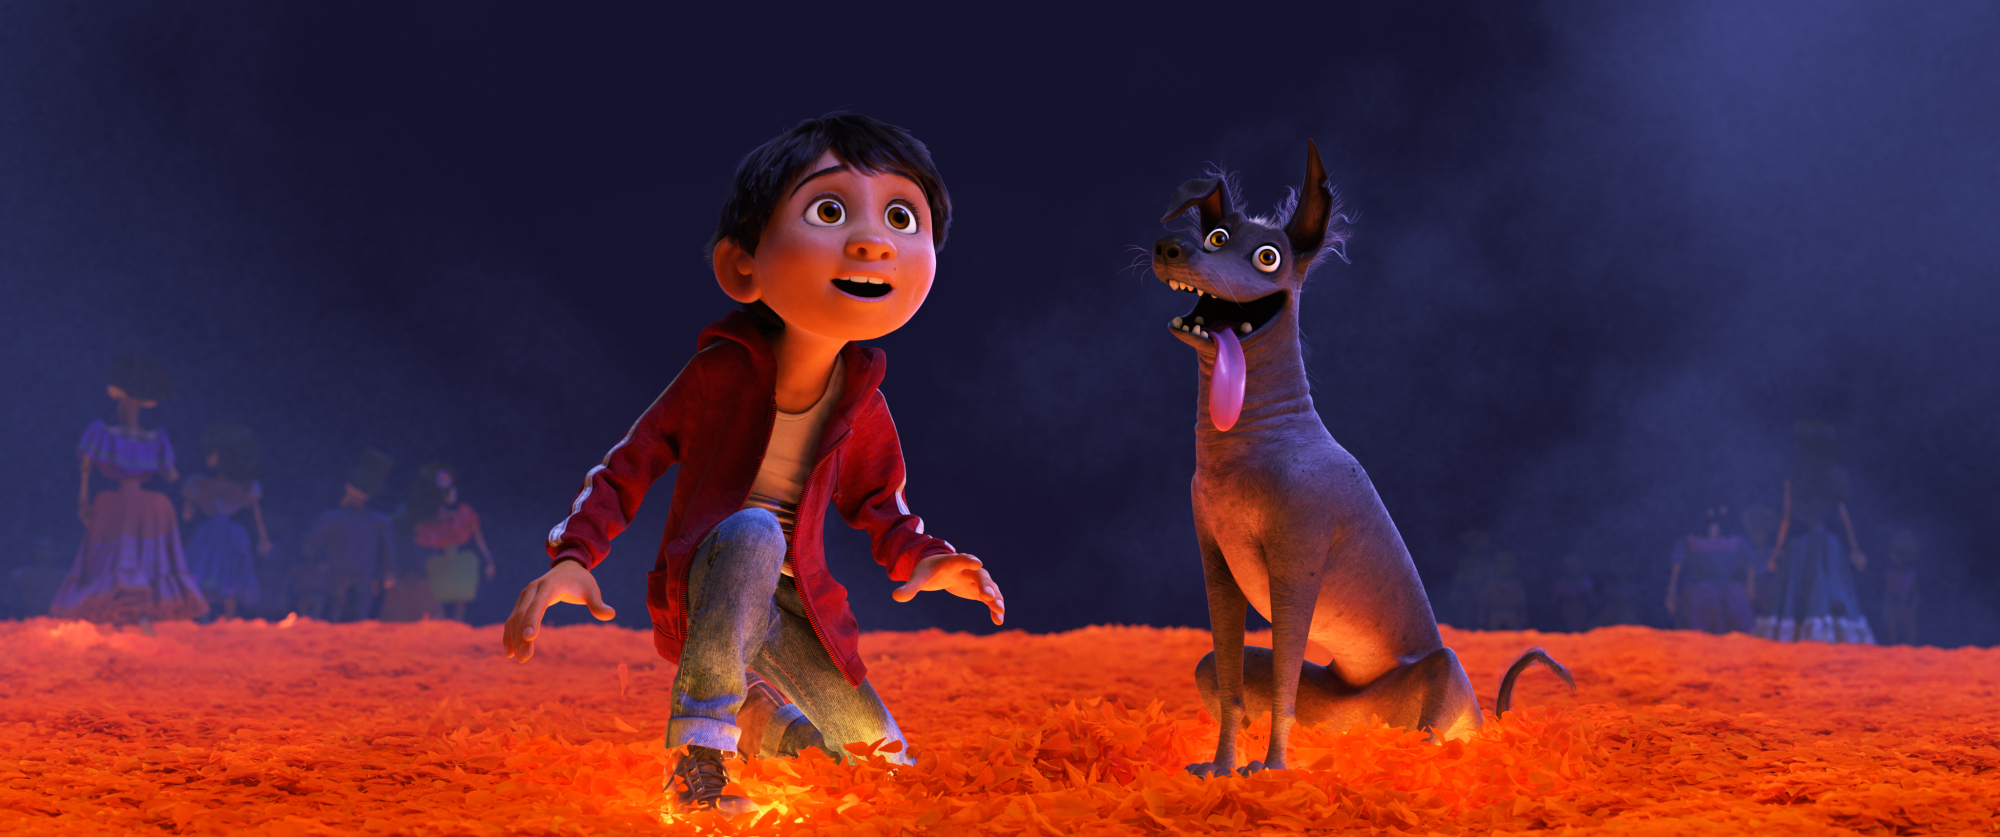 BMARIGOLD BRIDGE  In DisneyPixars Coco,Miguel (voice of newcomer Anthony Gonzalez) desperately wants to prove hismusicaltalent. But when he strums the guitar ofhis idol, the late Ernesto de la Cruz, Miguel sets off a mysterious chain of events and finds himselfand his loyal dog Dantecrossing into the Land of the Dead via a breathtaking bridgemadeof marigoldpetals.Directed by Lee Unkrich, co-directed by Adrian Molina and produced by Darla K. Anderson, Coco opens in theaters Nov. 22, 2017. 2017 DisneyPixar. All Rights Reserved.